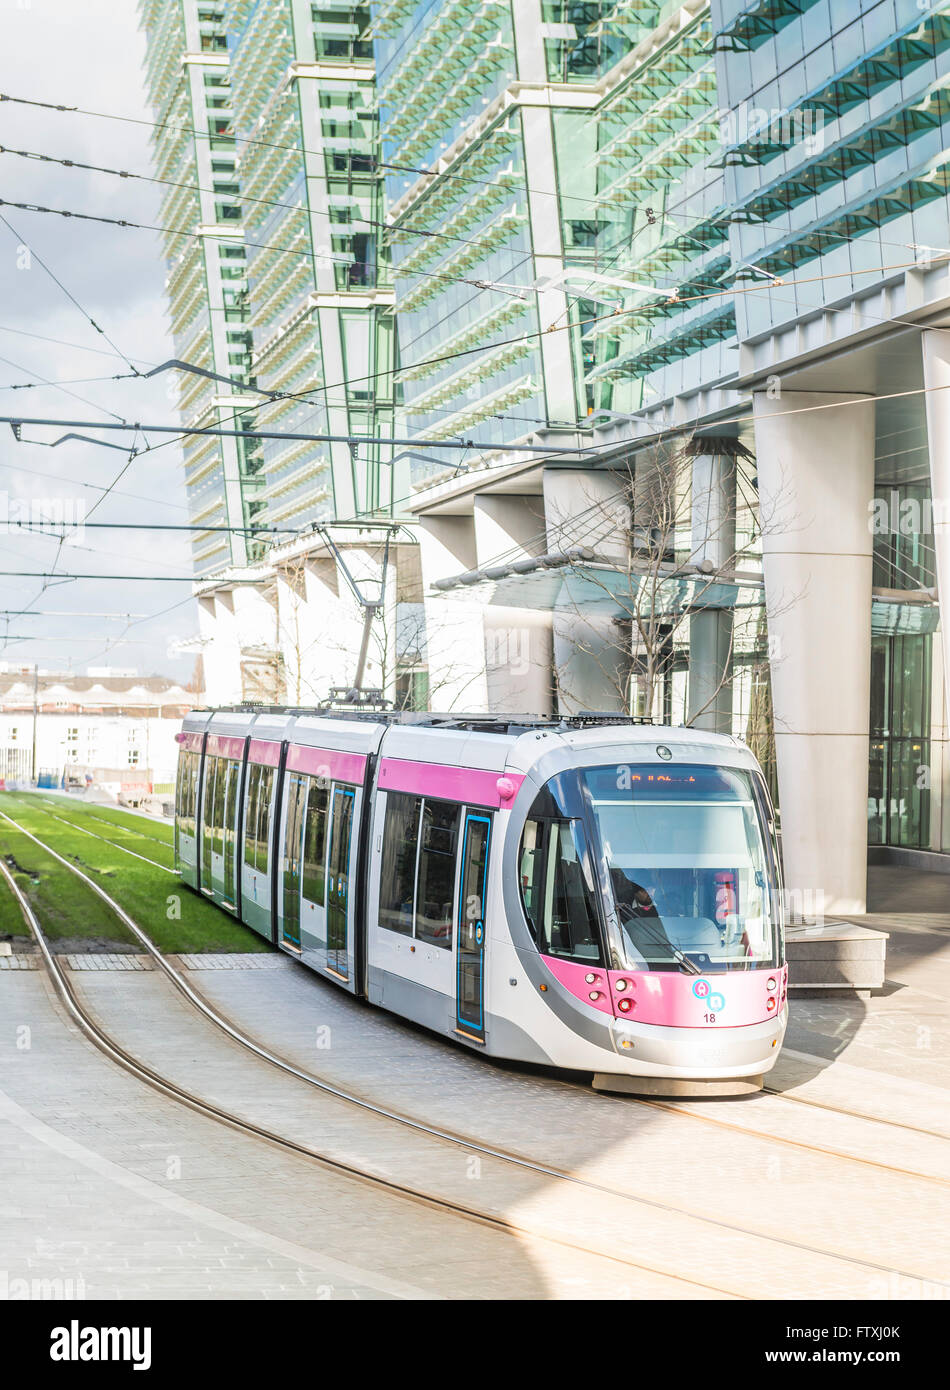 Electric tram in Snow Hill, Birmingham City Centre. England. - Stock Image